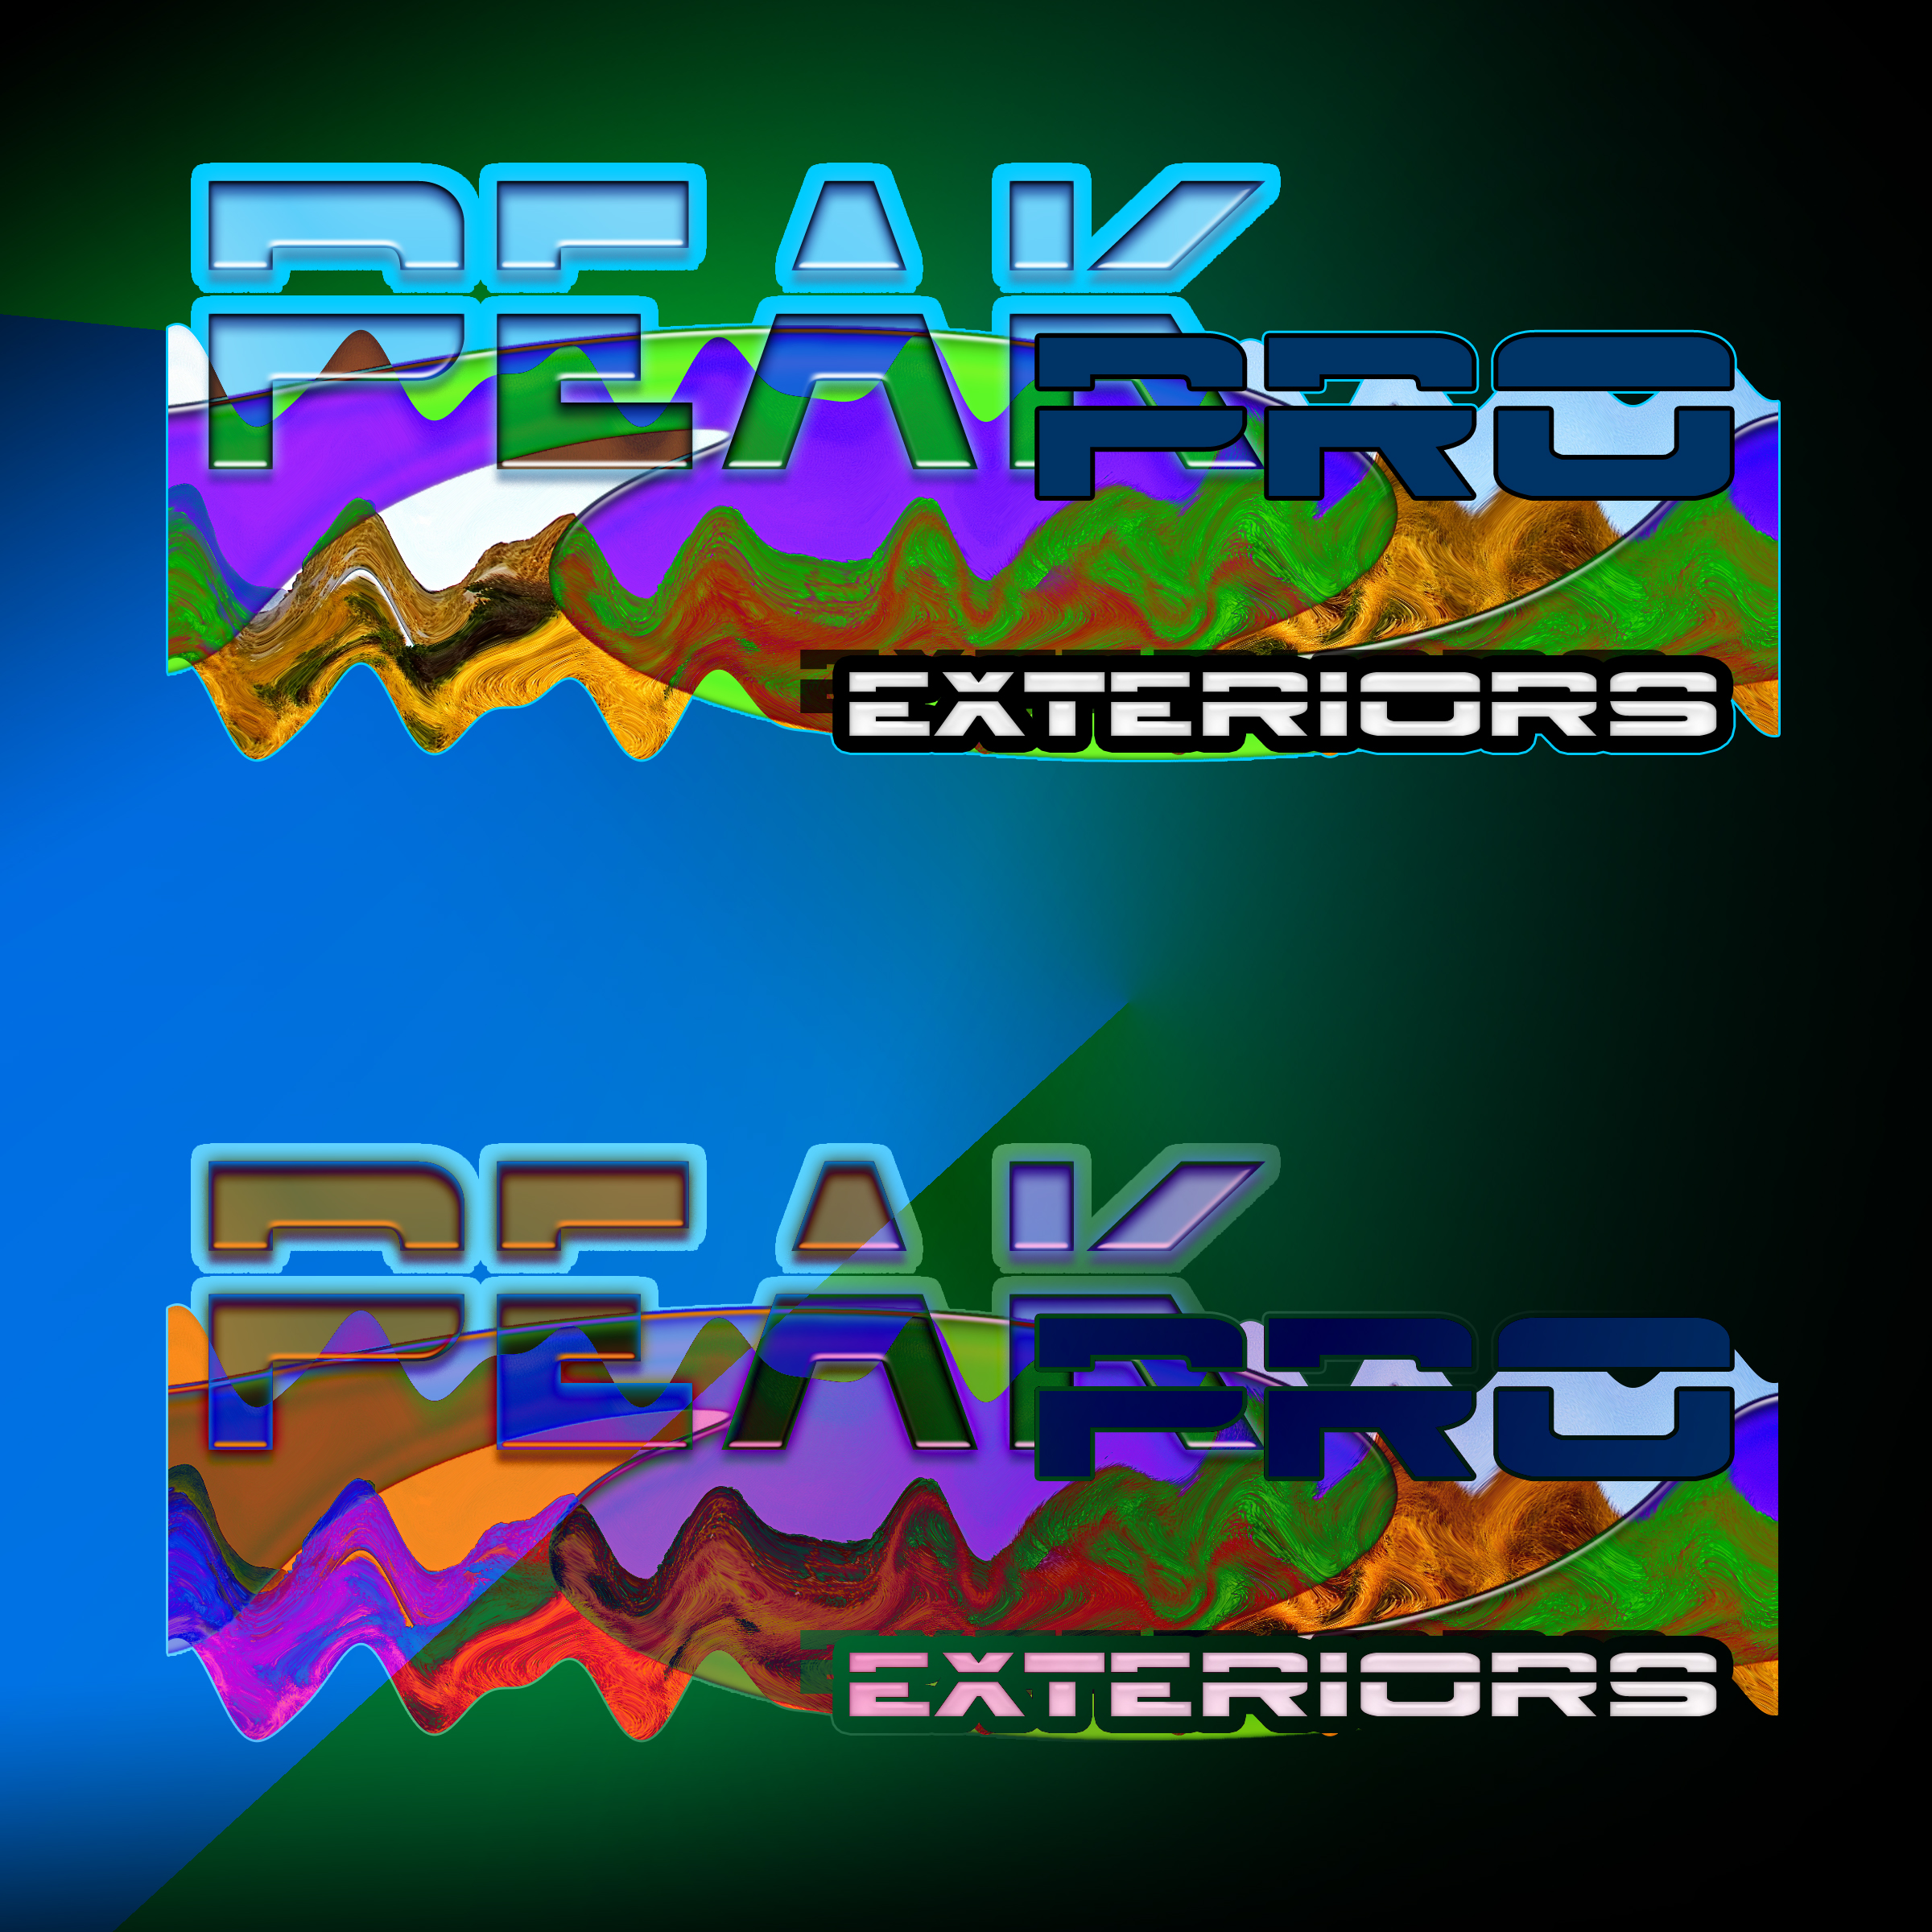 Logo Design by MITUCA ANDREI - Entry No. 44 in the Logo Design Contest Captivating Logo Design for Peakpro Exteriors Inc..